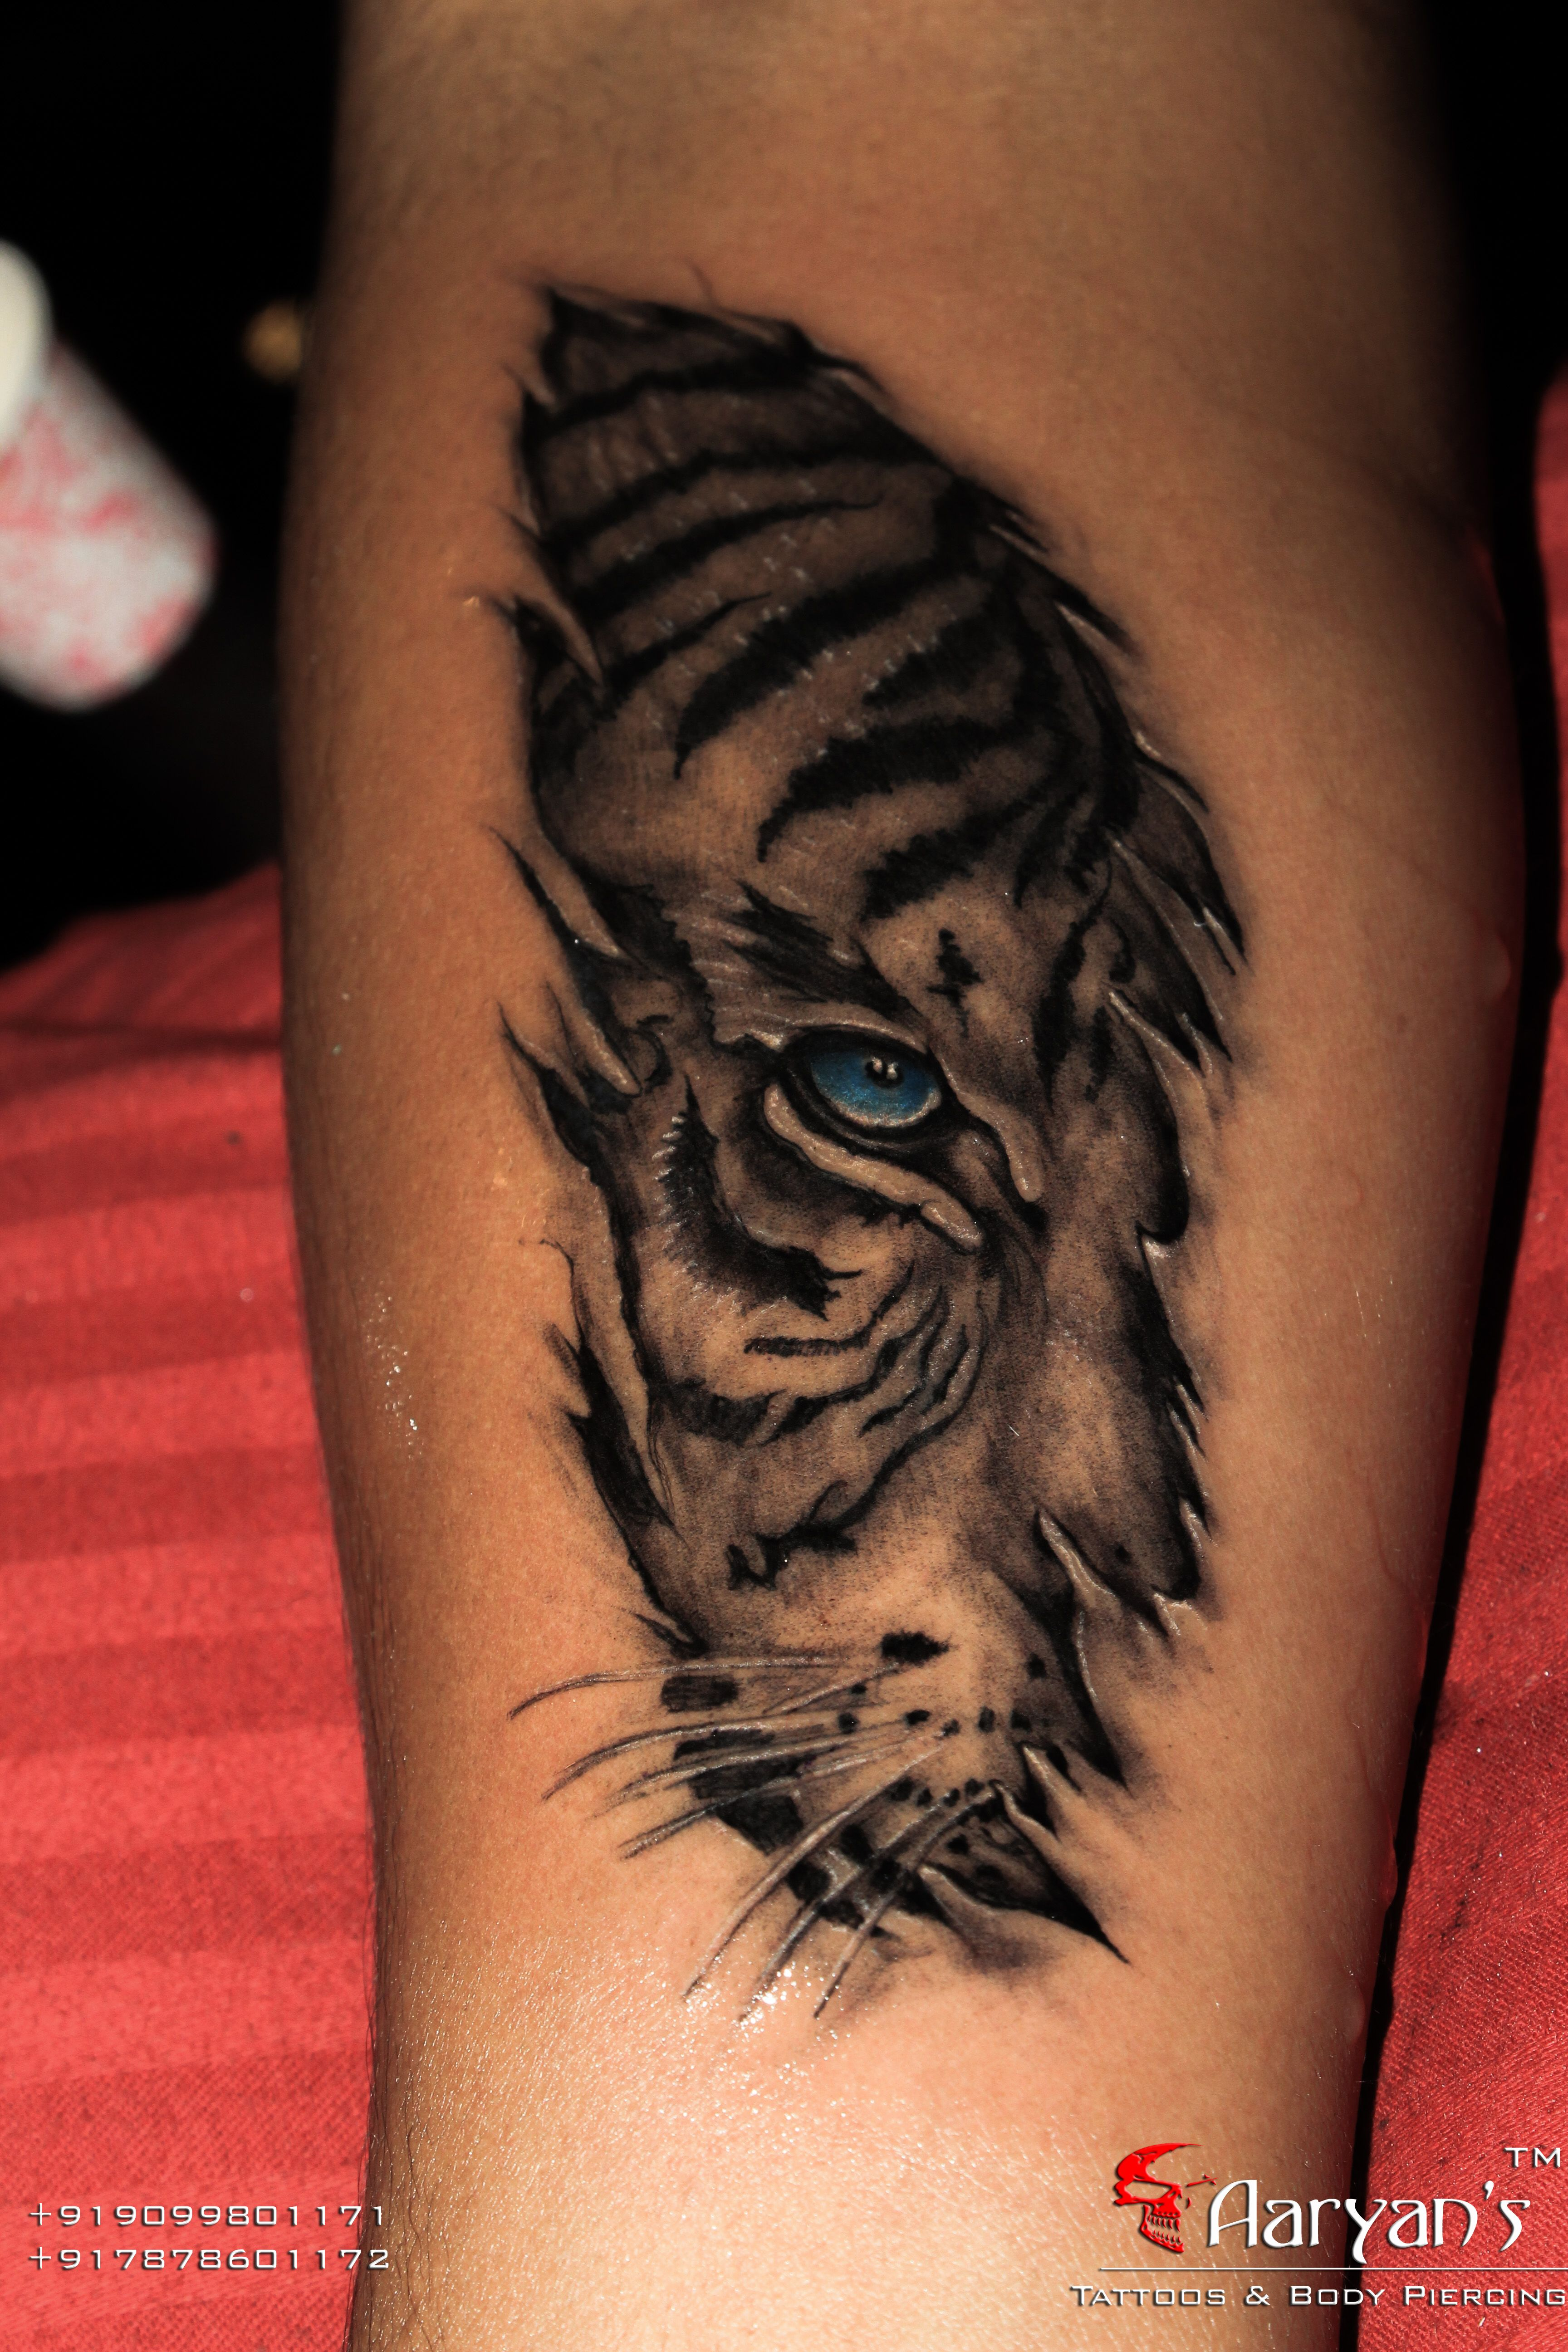 38a3a7ee9 Here is the skin Tear # Tiger Tattoo..!! Original Concept belongs to Great  Realism Master Tattooist Mr. # Eric from # IronBuzz # Mumbai , ...